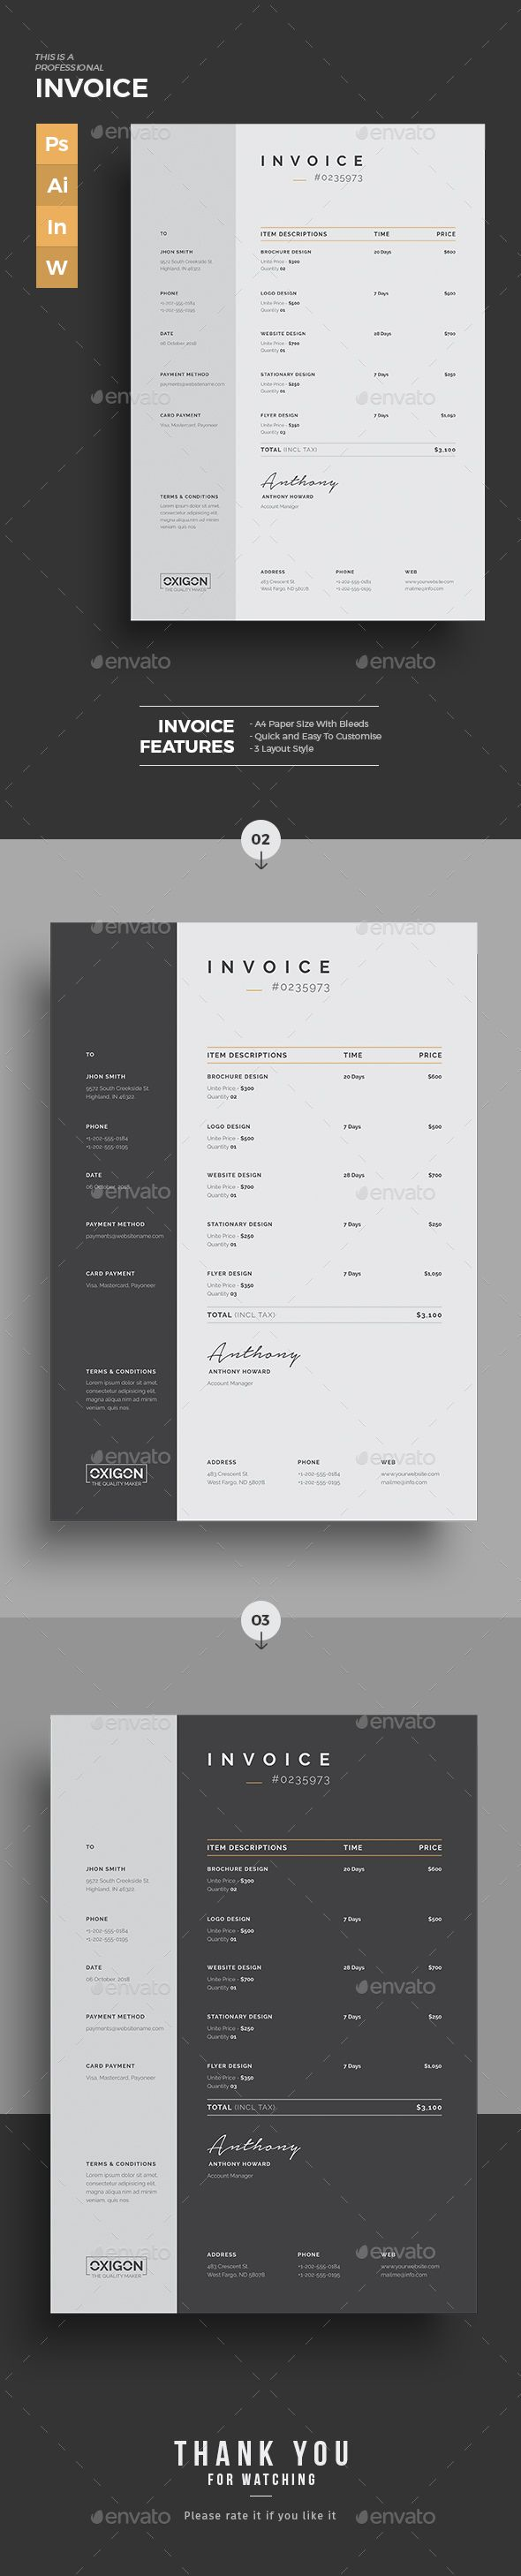 Personalized Invoices Word Best  Invoice Design Ideas On Pinterest  Invoice Layout  Proforma Invoice Format For Advance Payment Pdf with Proforma Invoice Form Invoice Template Available In Excel  Word  Psd  Ai  Download Now Printable Invoice Templates Free